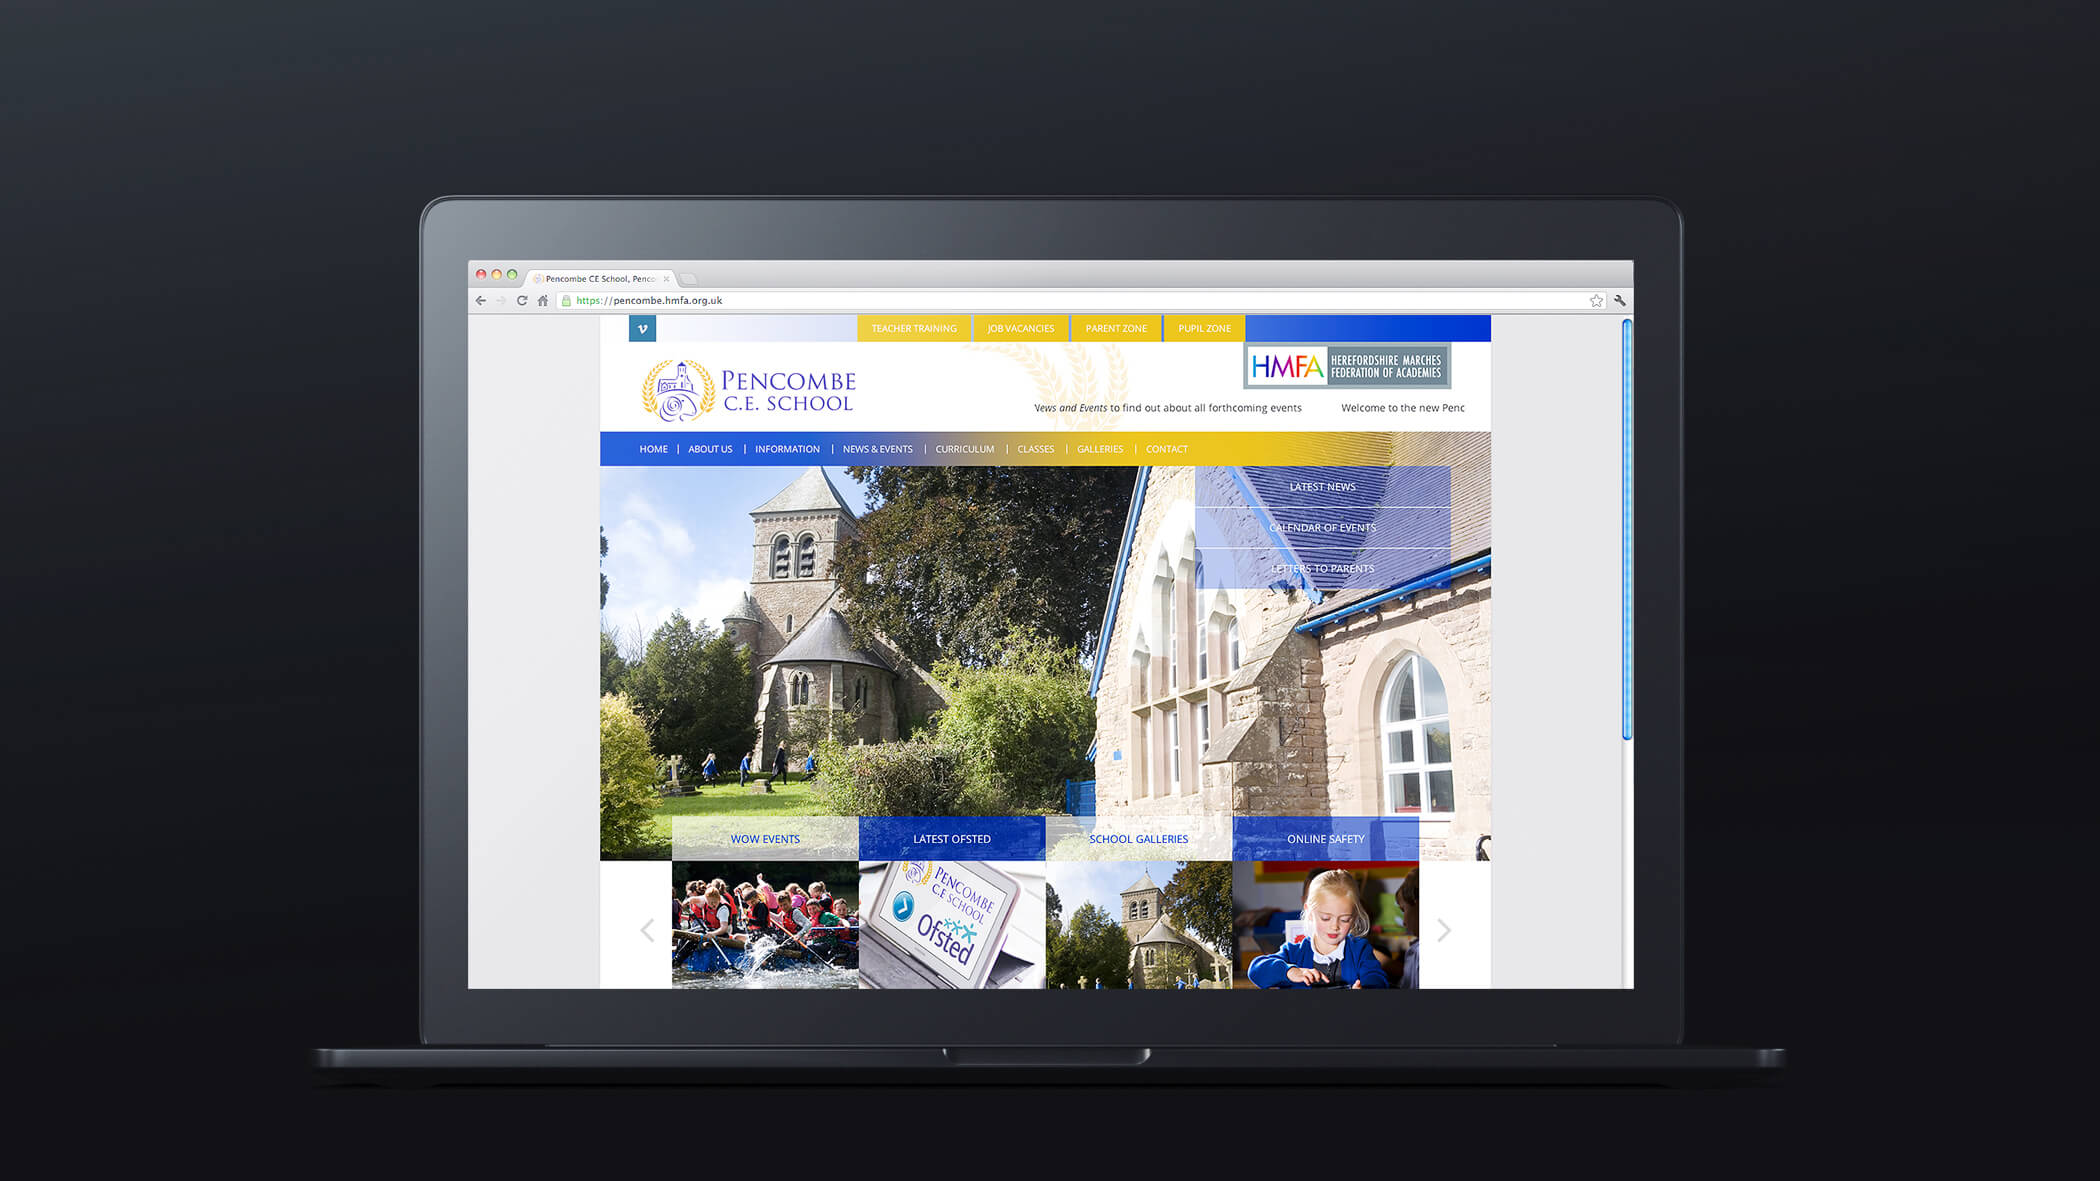 church school website design showing school photos